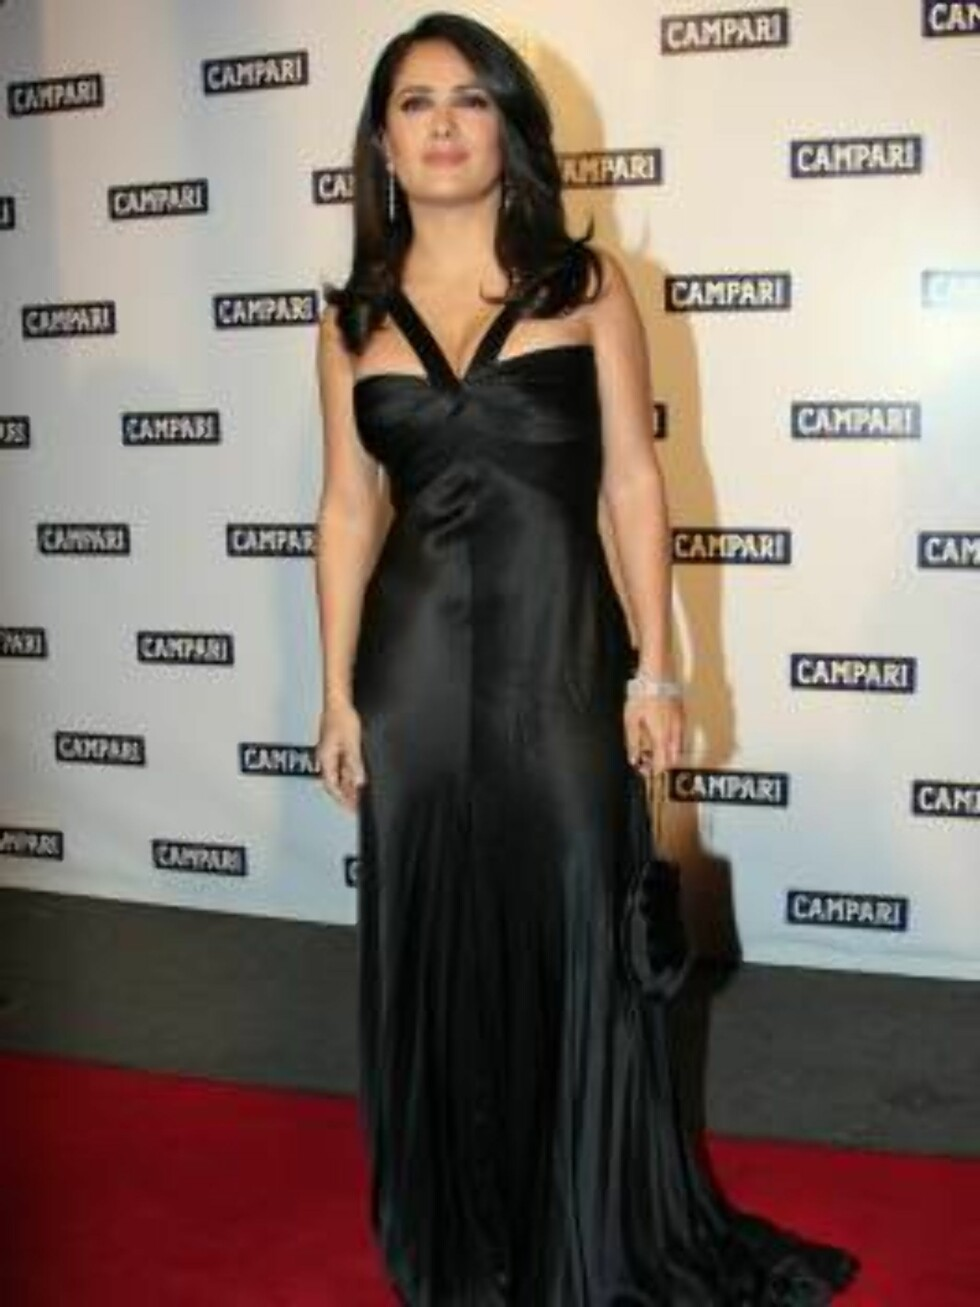 MILAN, ITALY - NOVEMBER 23:  Actress Salma Hayek arrives at Hotel Campari calendar release event November 23, 2006 in Milan, Italy.  (Photo by Giuseppe Cacace/Getty Images) 72627040GC002_HotelCampari *** Local Caption *** Salma Hayek  * SPECIAL INSTRUCTI Foto: All Over Press